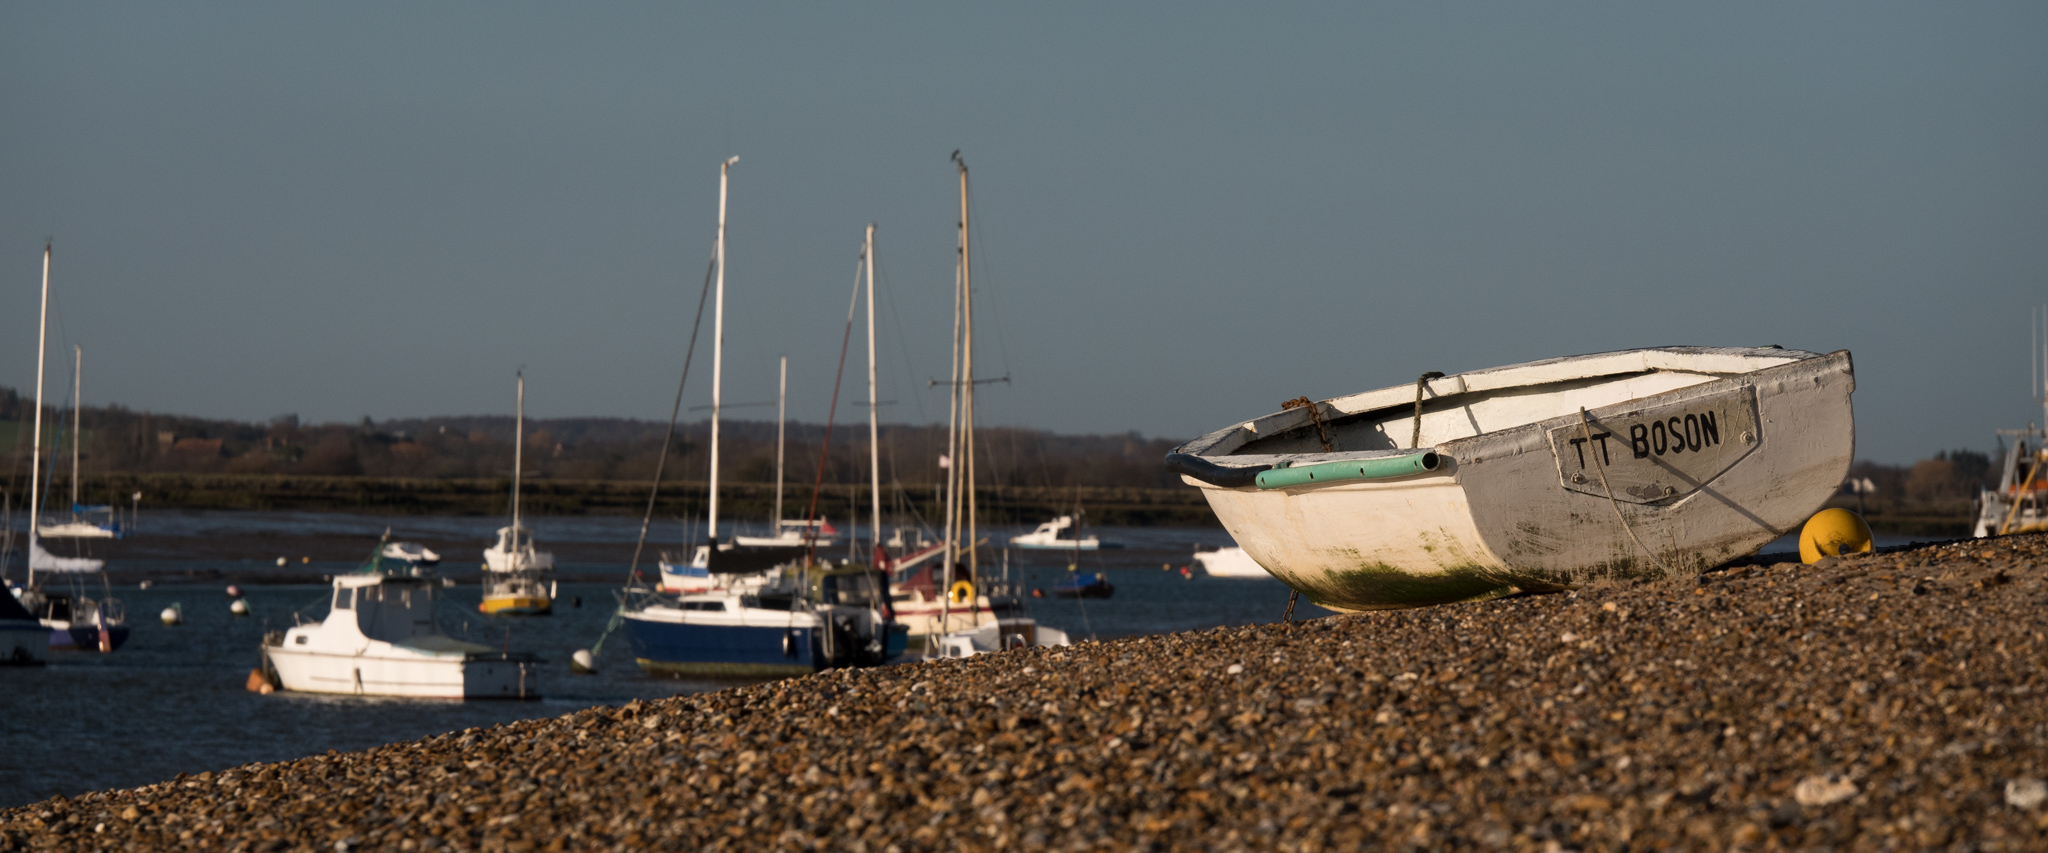 I couldn't help feeling this small boat, stranded high on the beach, was yearning to be in the water!